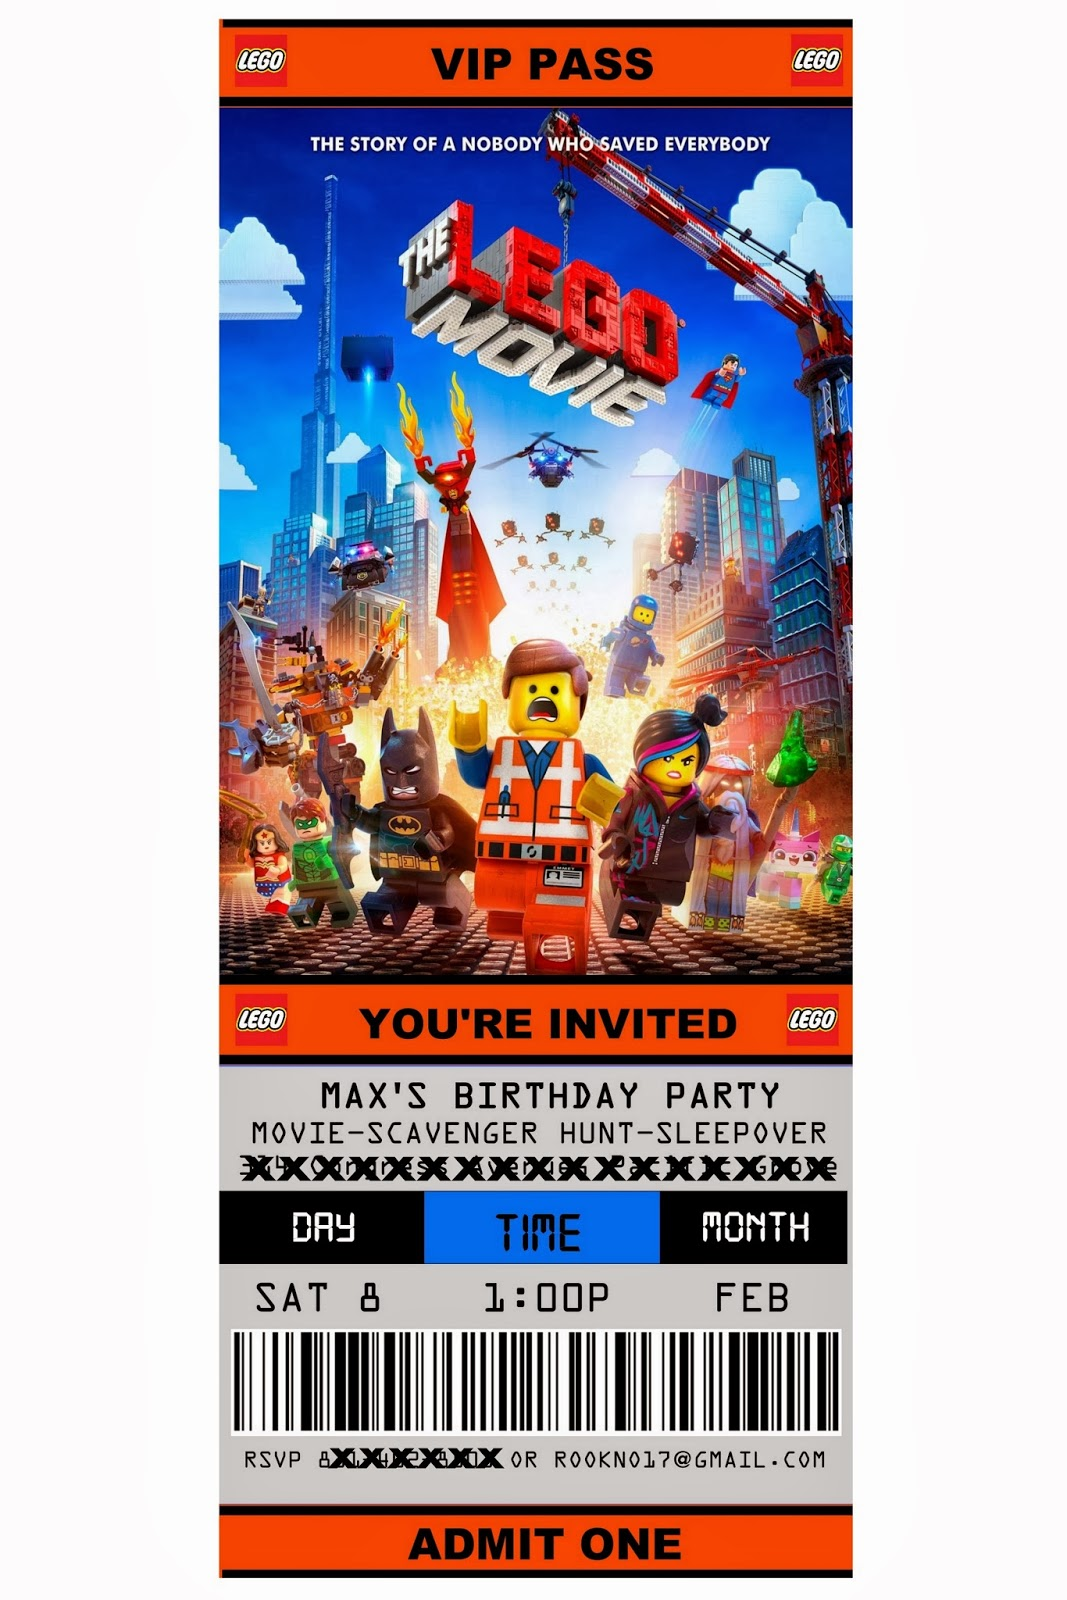 Jennuine by Rook No 17 Free Printable Ticket Style Party – Lego Party Invitations Printable